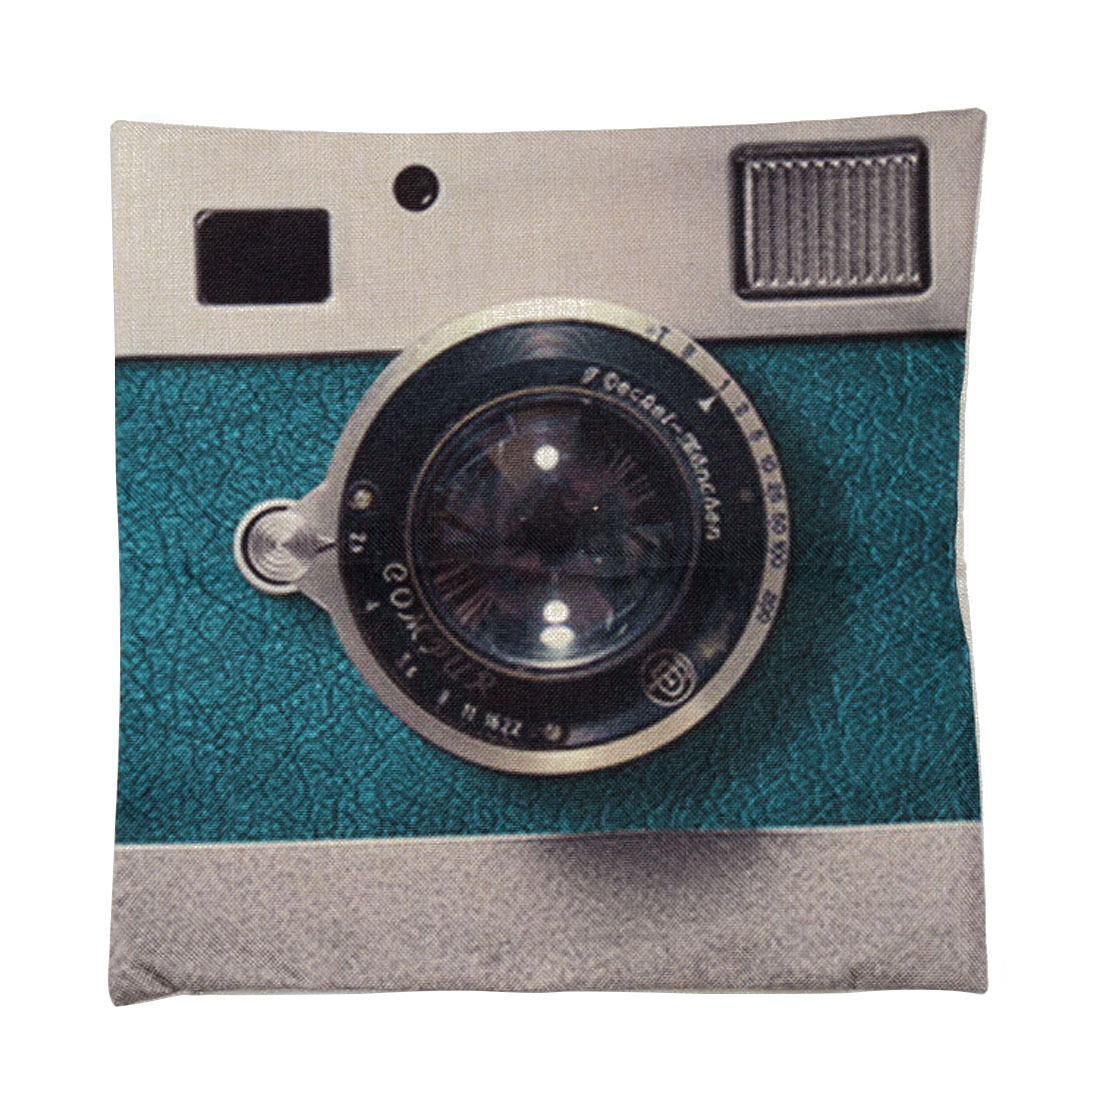 Piccocasa Sofa Linen Blue Camera Pattern Cushion Cover Pillow Case 45 x 45cm